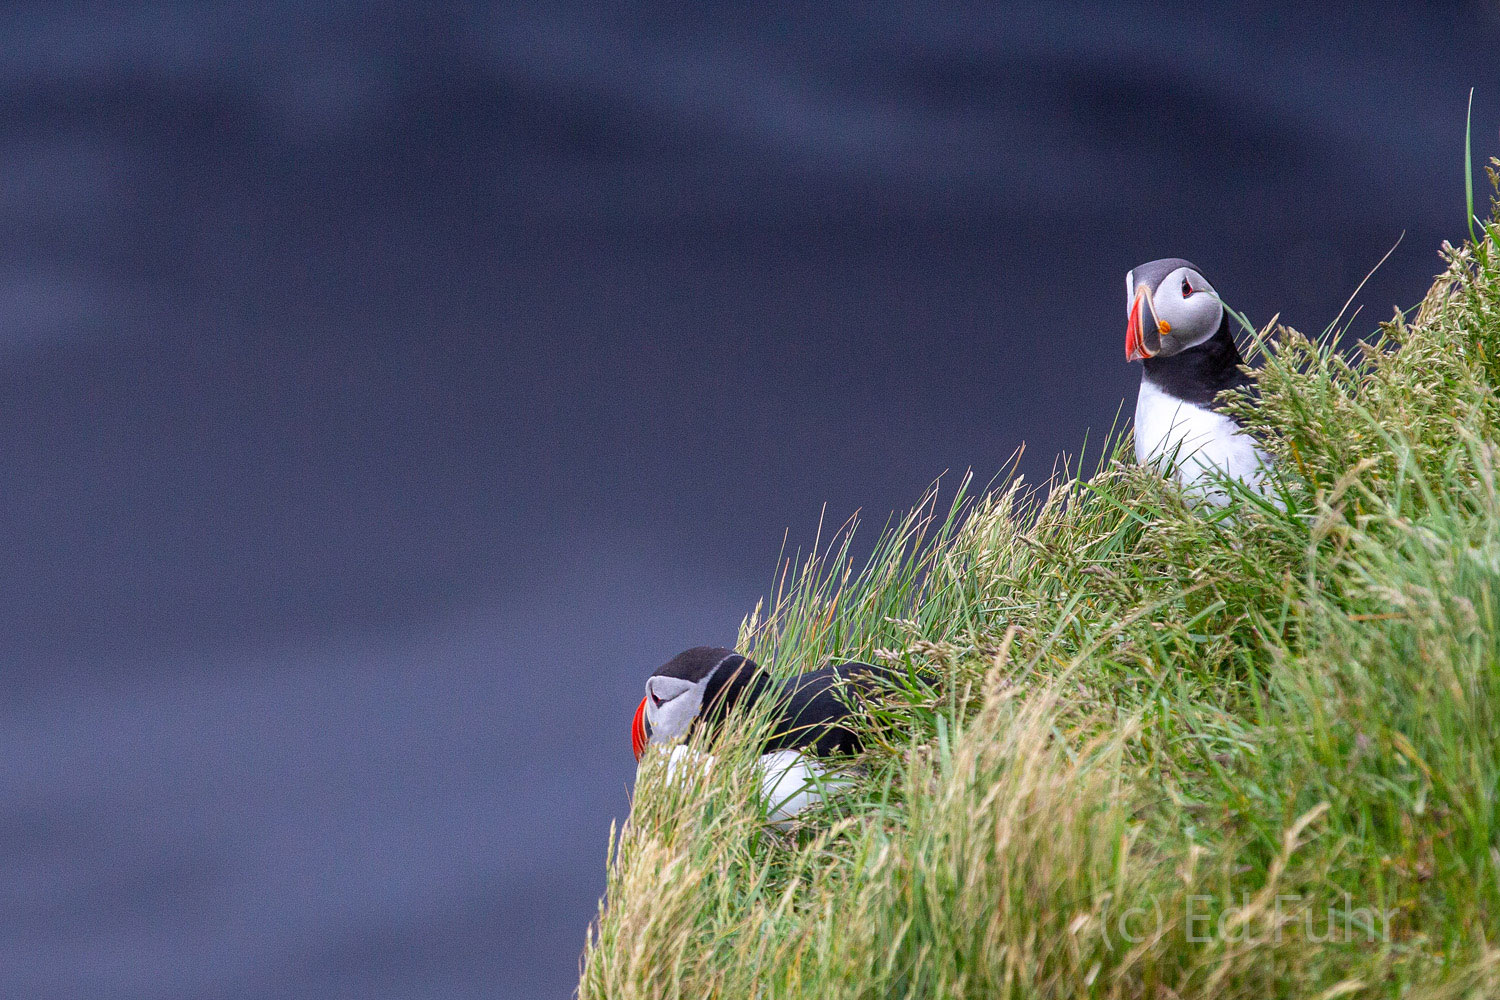 A couple of puffins preen and keep a lookout on the ocean below where they spend much of their life.